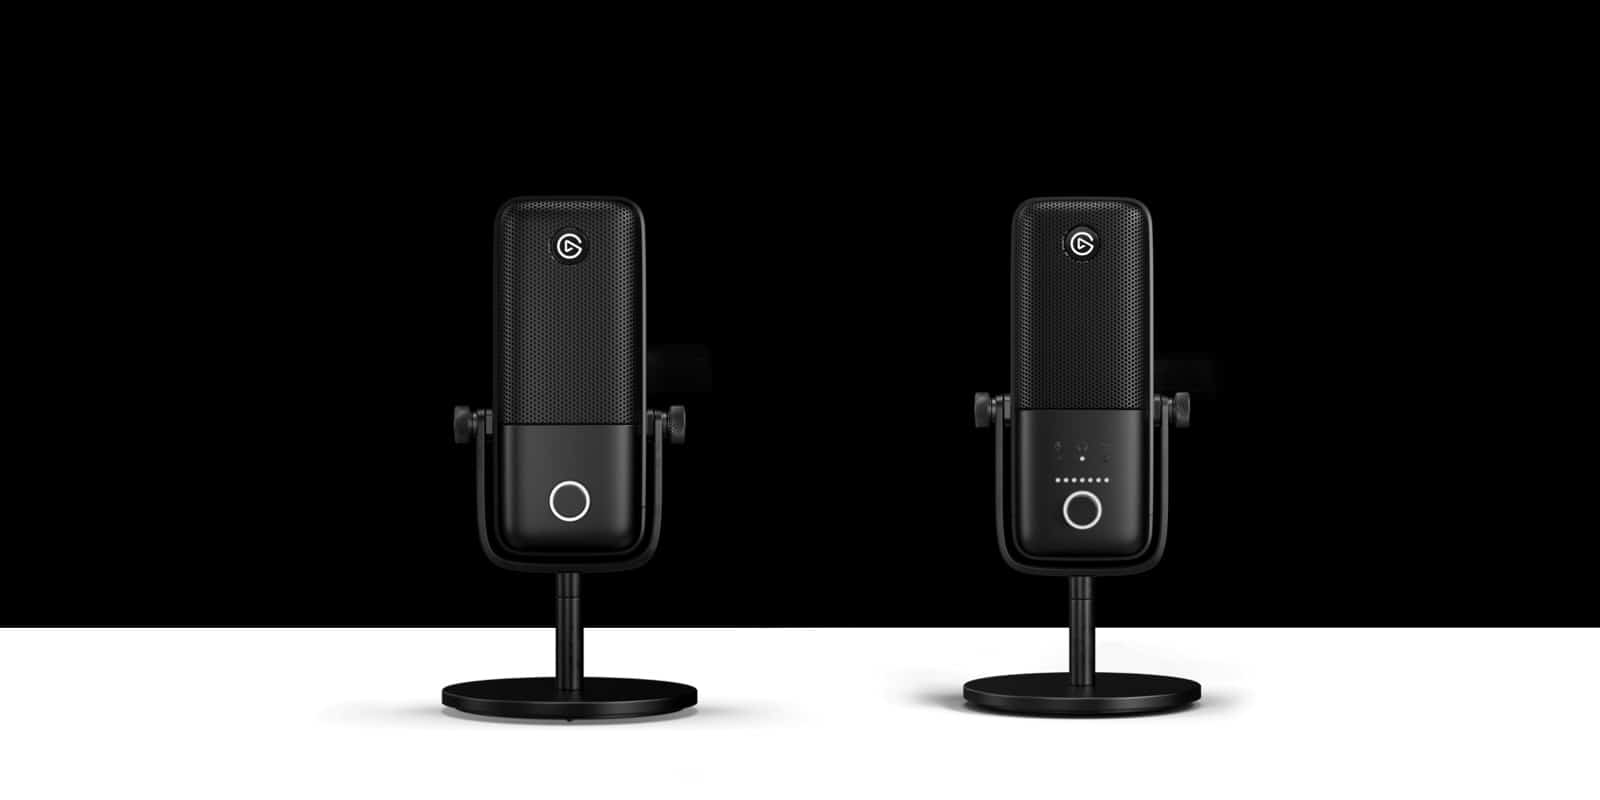 New high-end USB microphones for content creators launched by Elgato in partnership with LEWITT